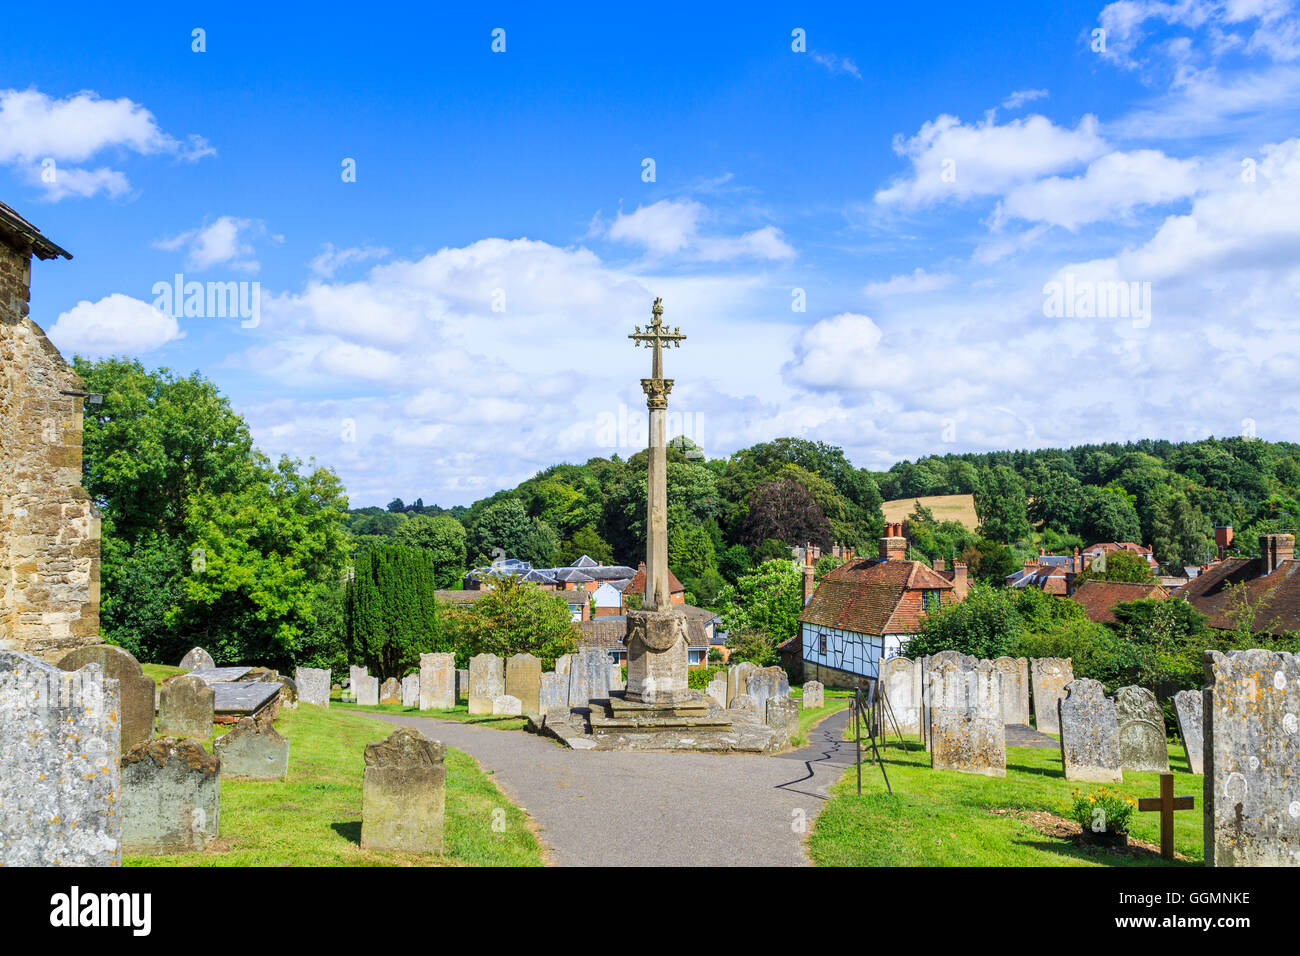 War memorial and churchyard at St Mary's Church, Westerham, a town in the Sevenoaks District, Kent, in summer - Stock Image